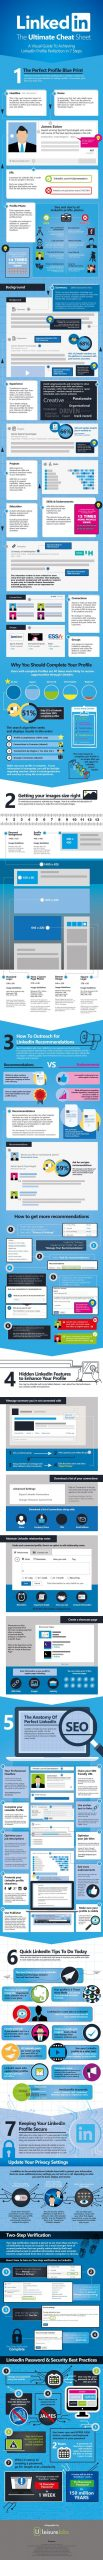 LinkedIn Profile Cheat Sheet Infographic compressed